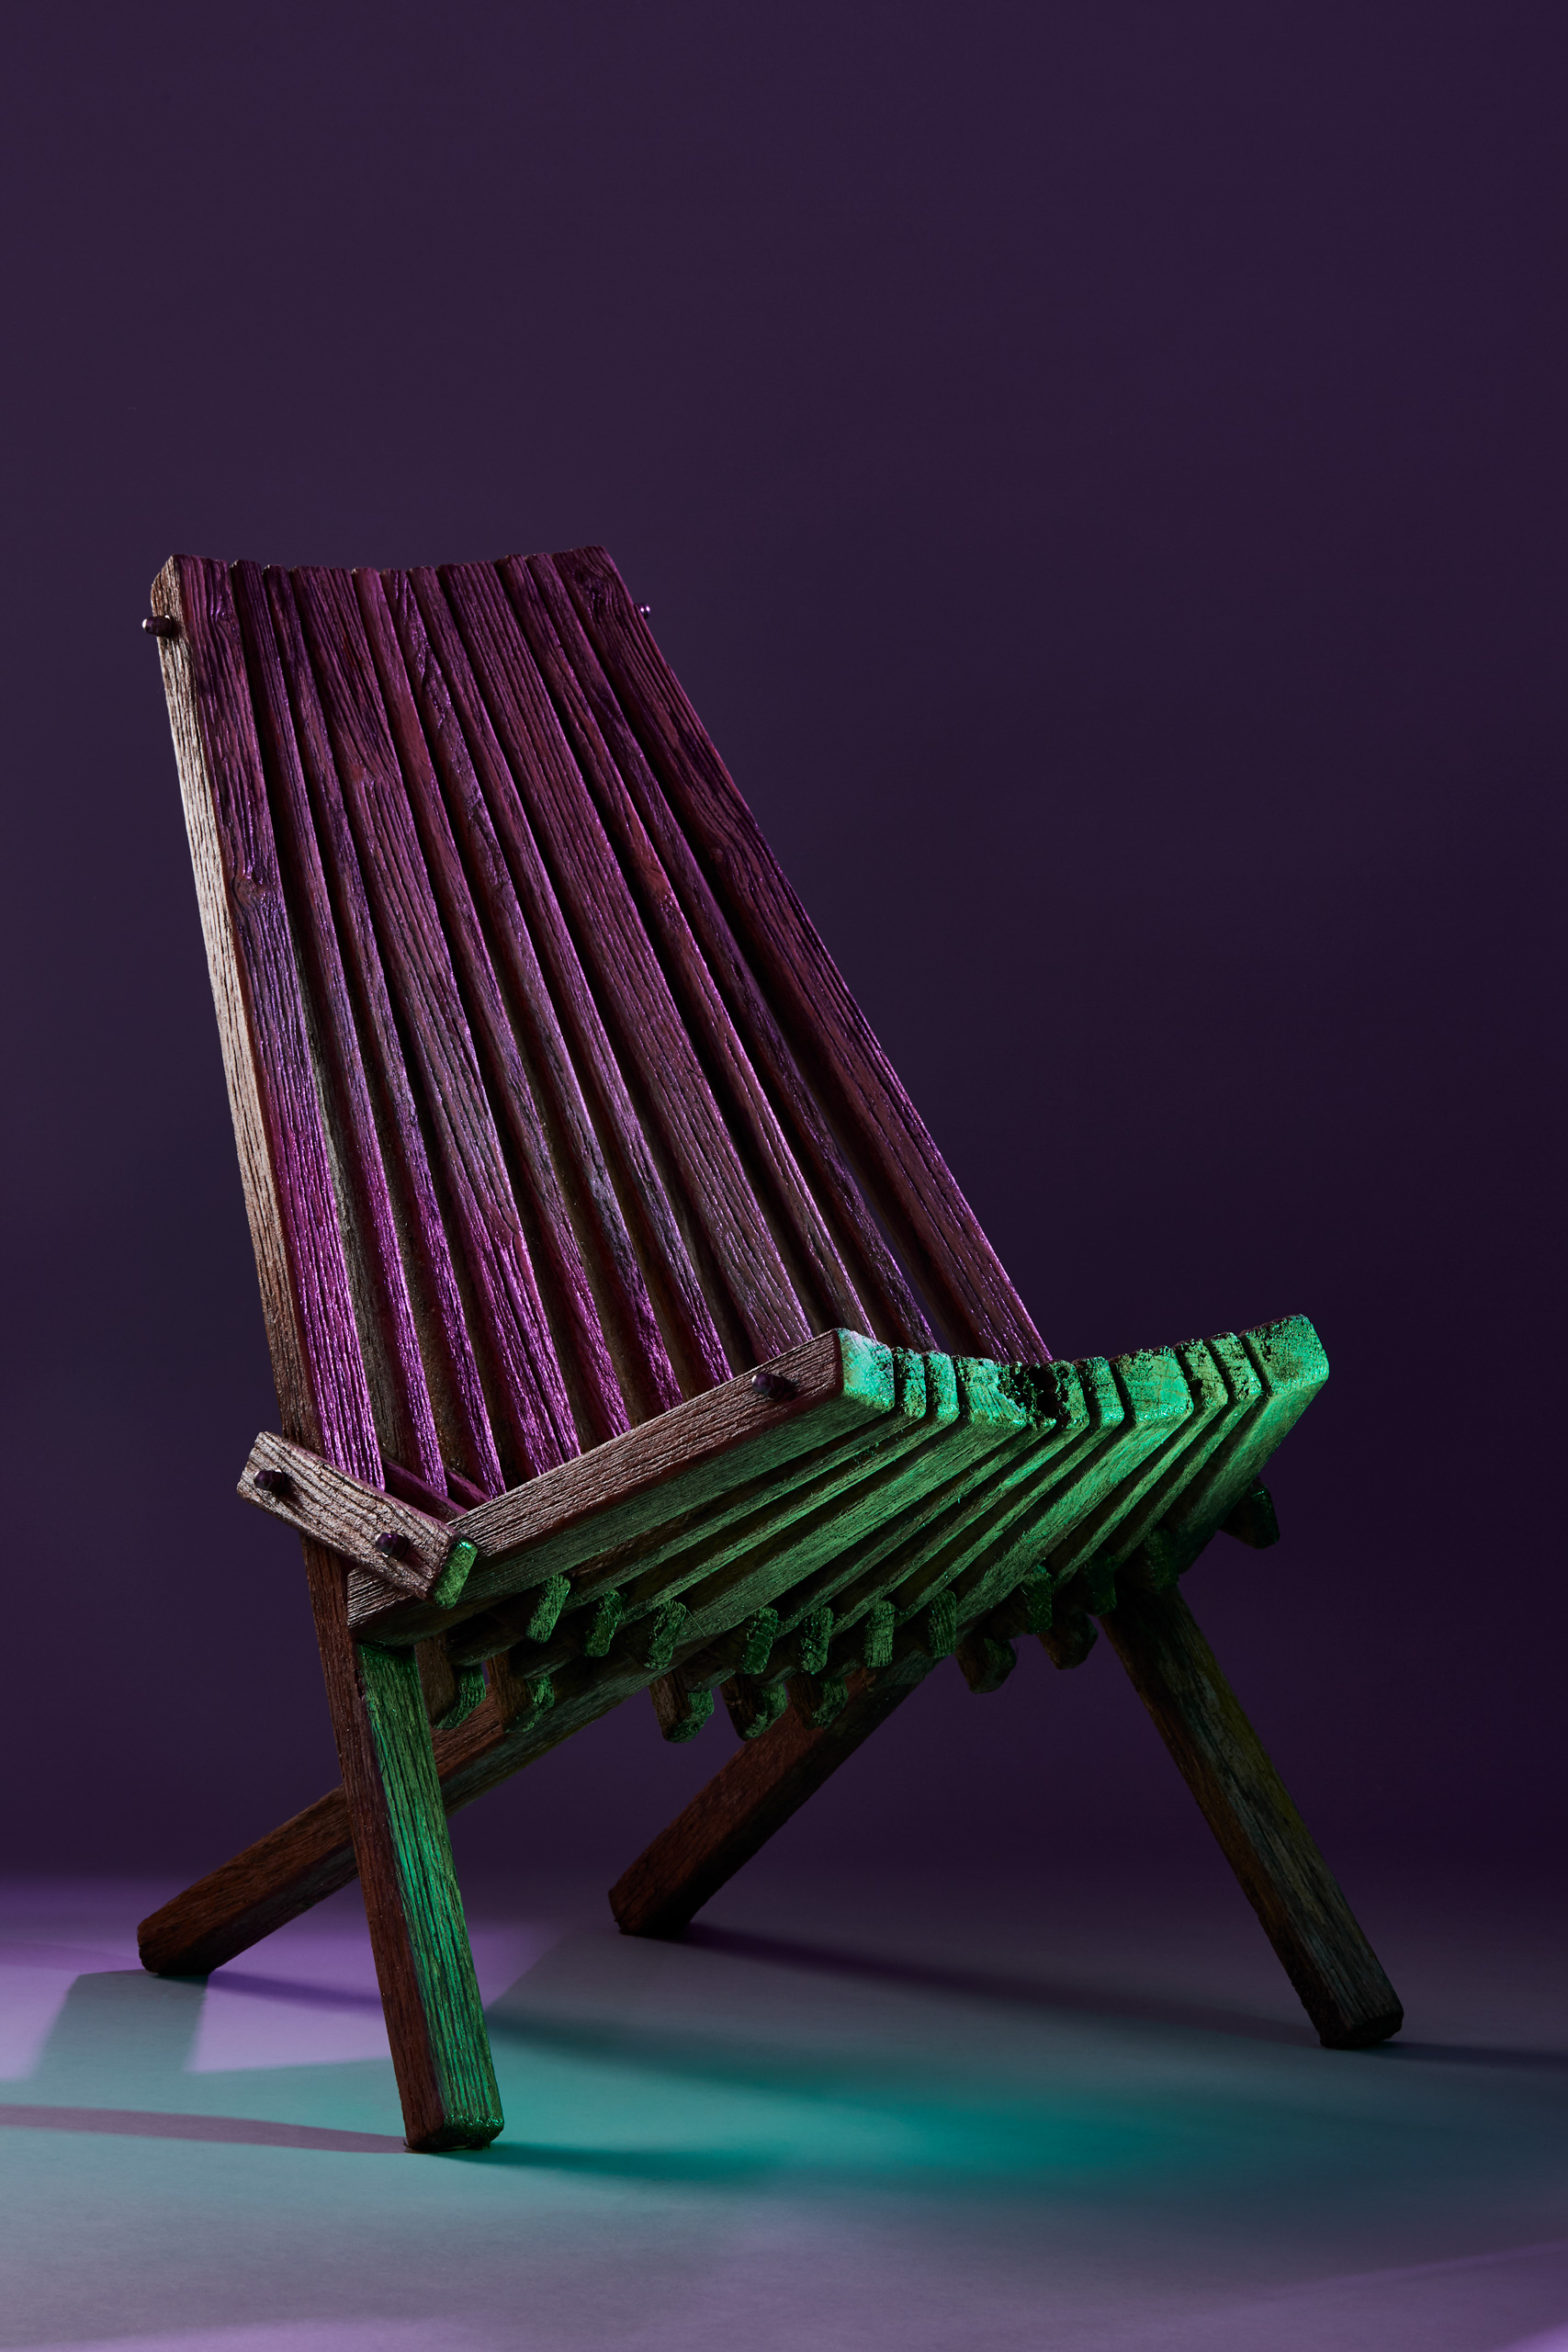 Wooden chair in purple green light